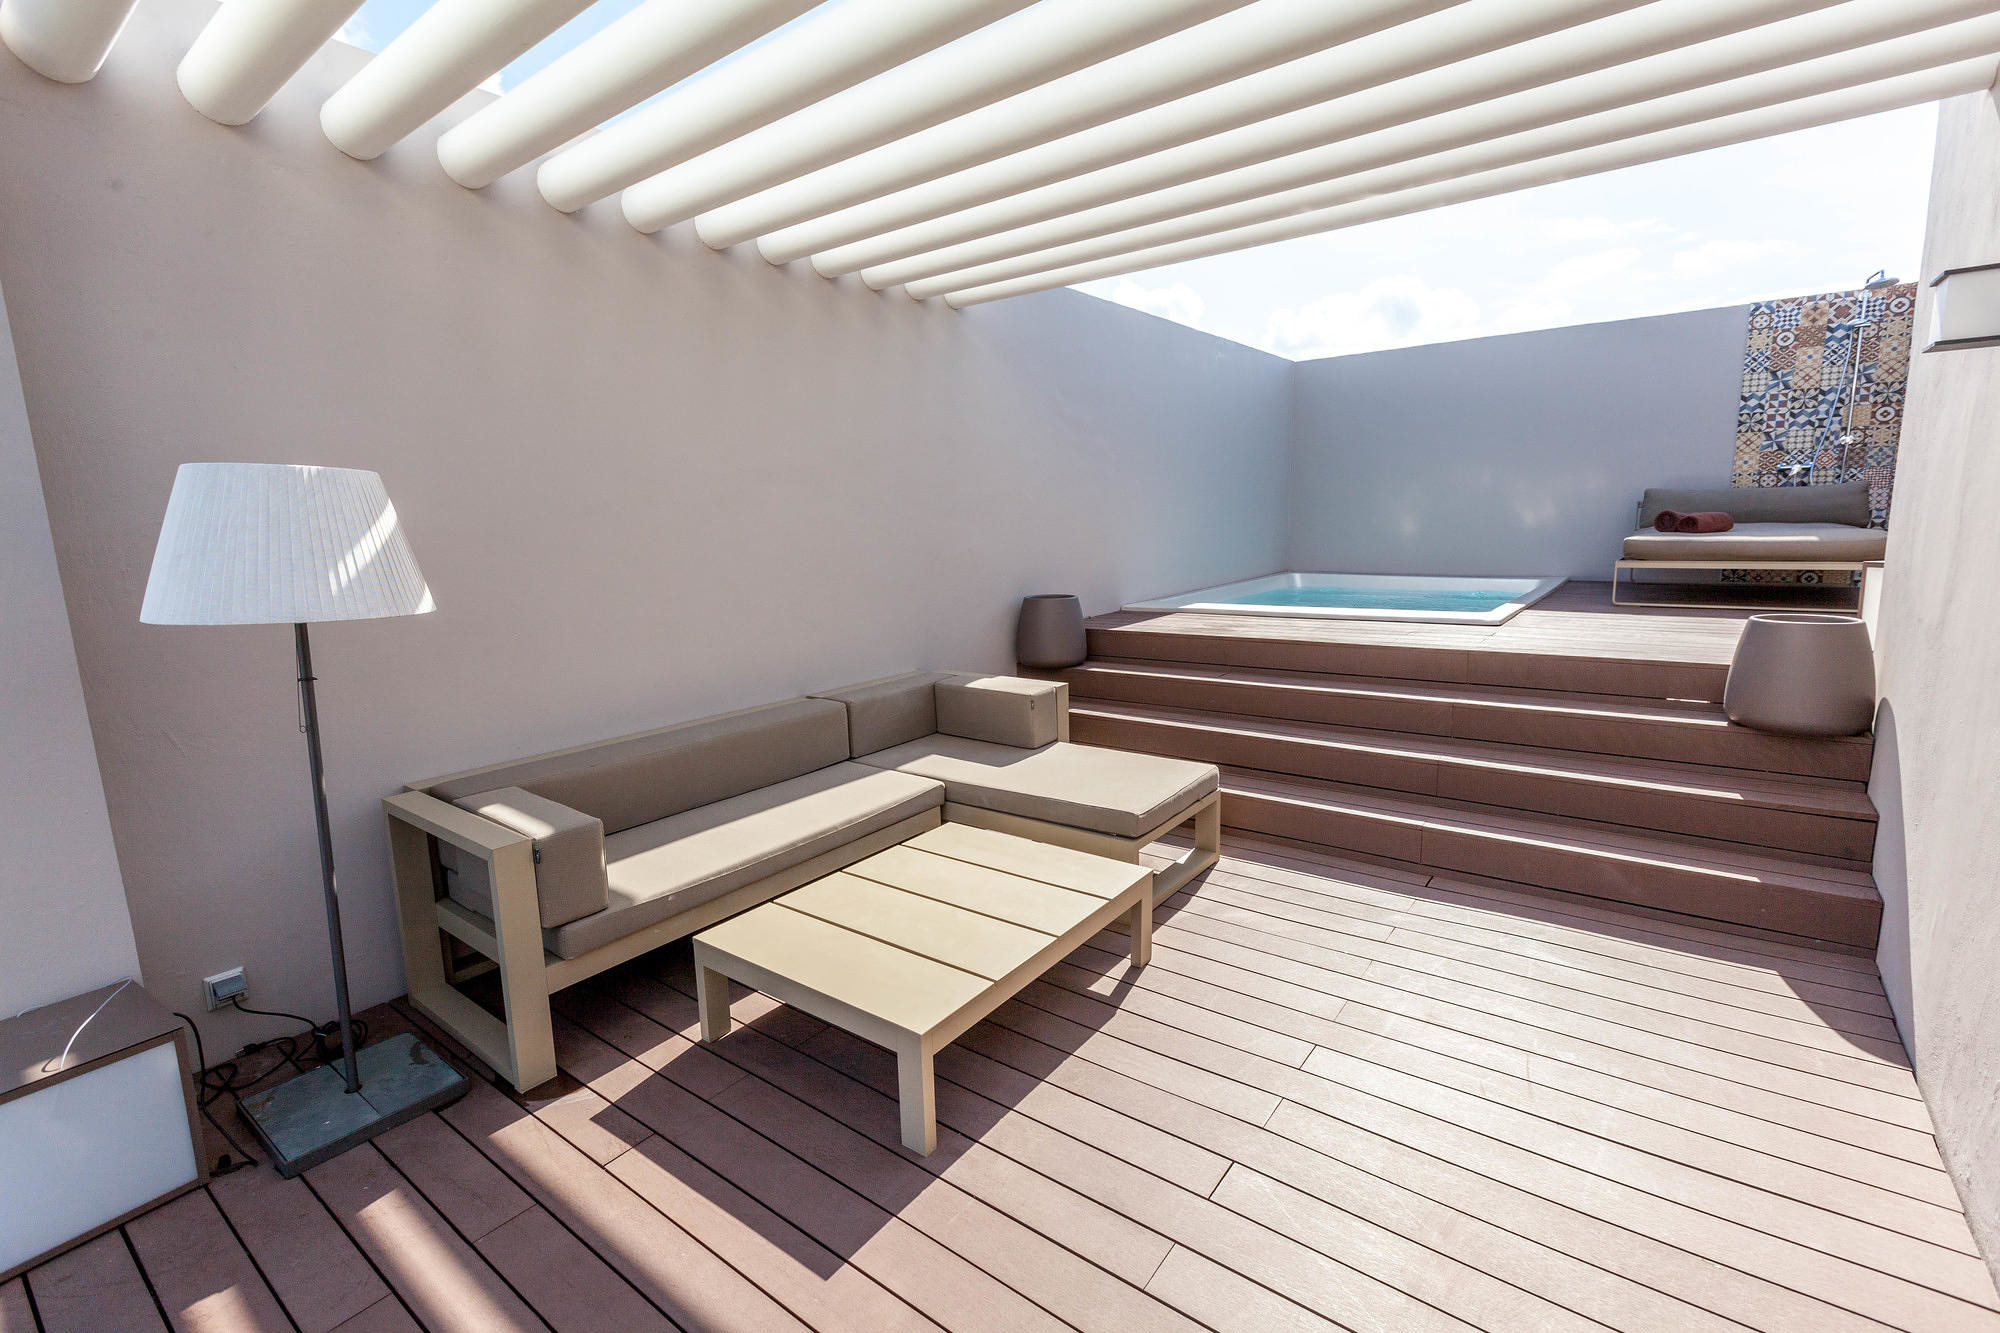 The private rooftop pool in the Two-Story Rooftop Terrace Suite at the Excellence El Carmen, Punta Cana